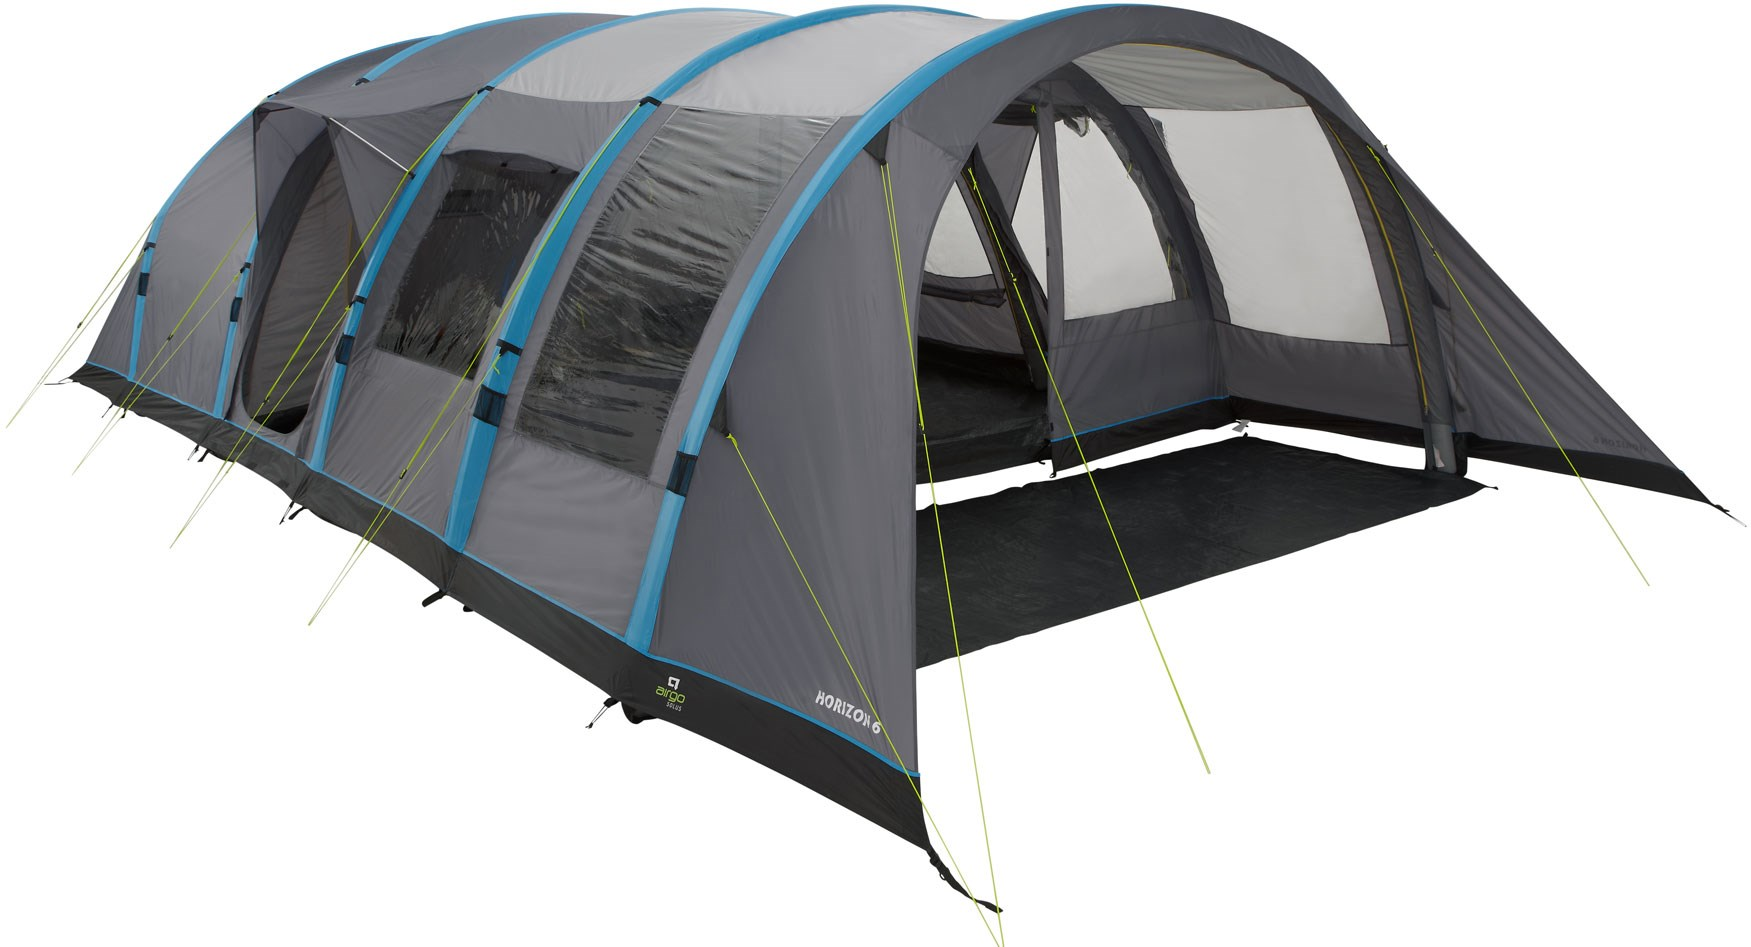 preload  sc 1 st  GO Outdoors & Airgo Solus Horizon 6 Inflatable Tent | GO Outdoors